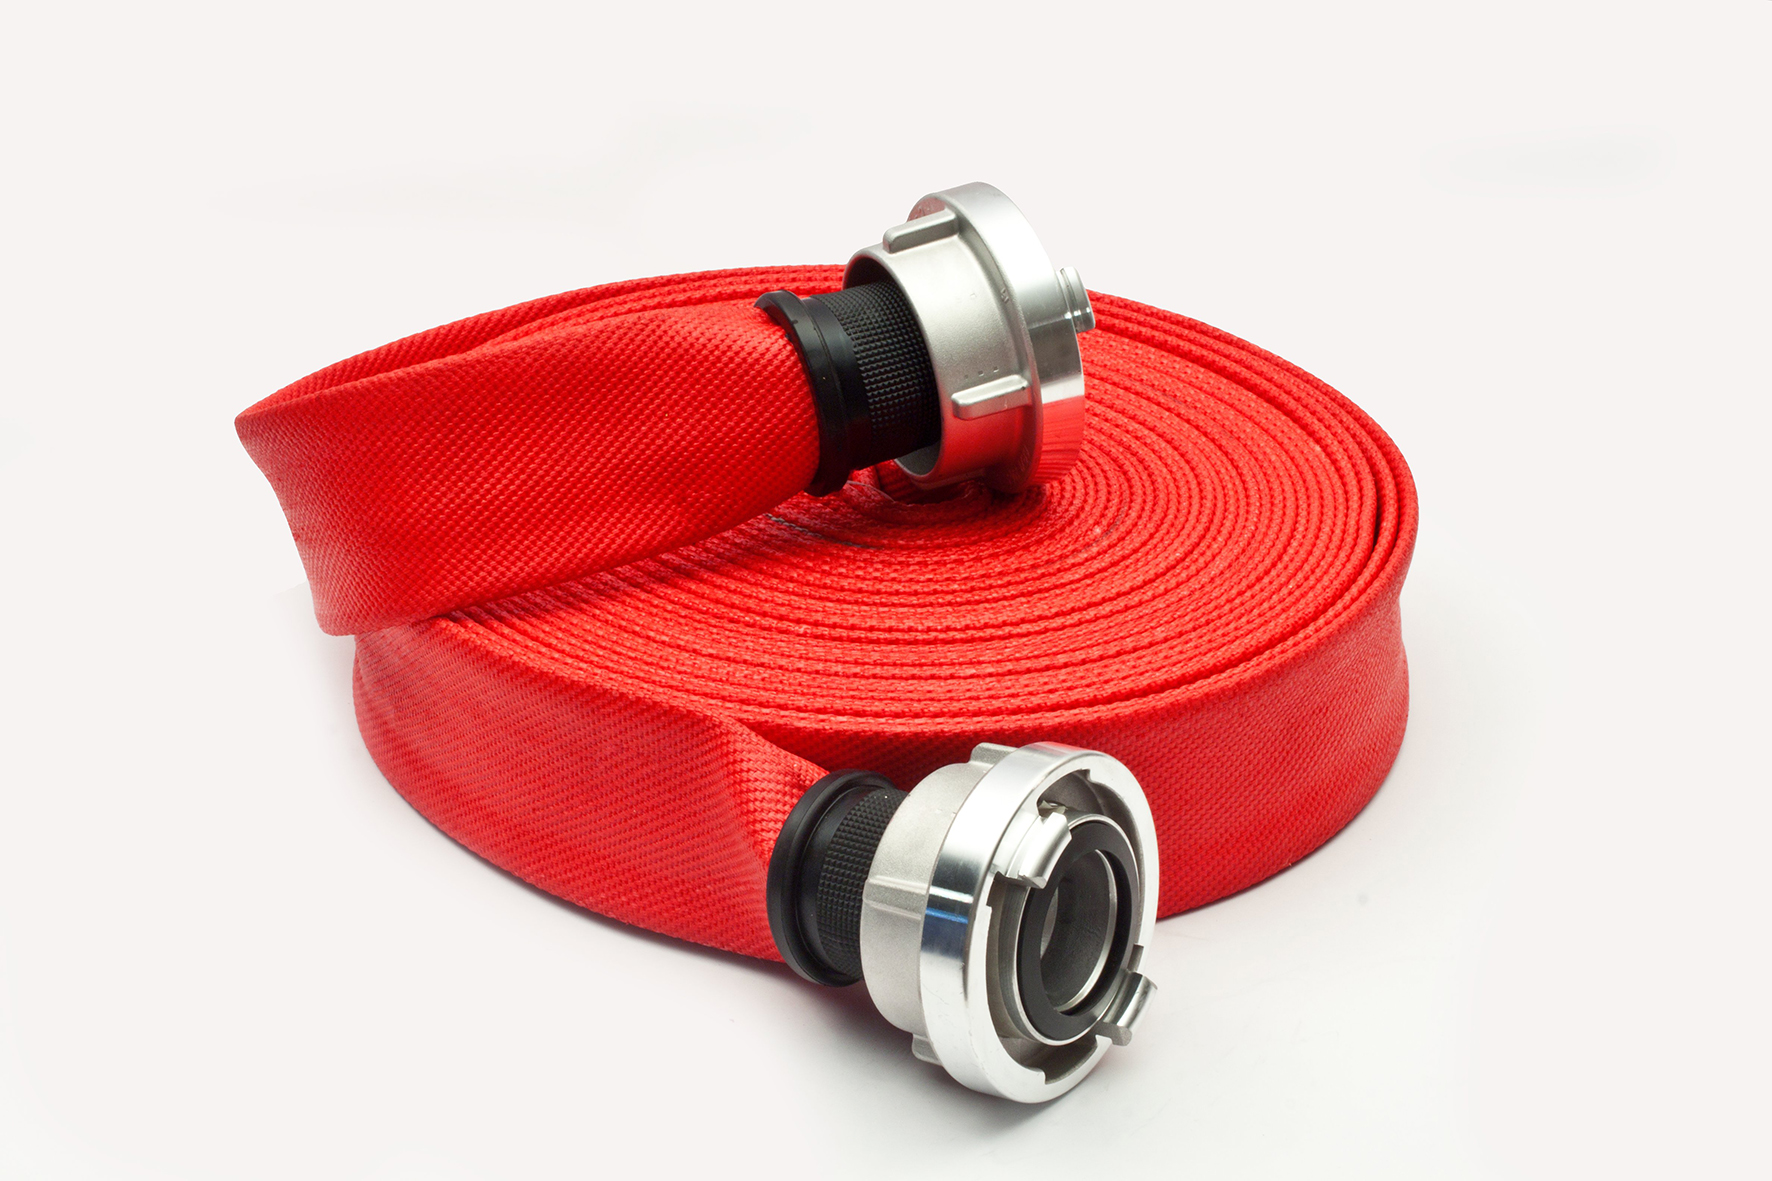 Firefighting hose by Sapin made with Leister technology